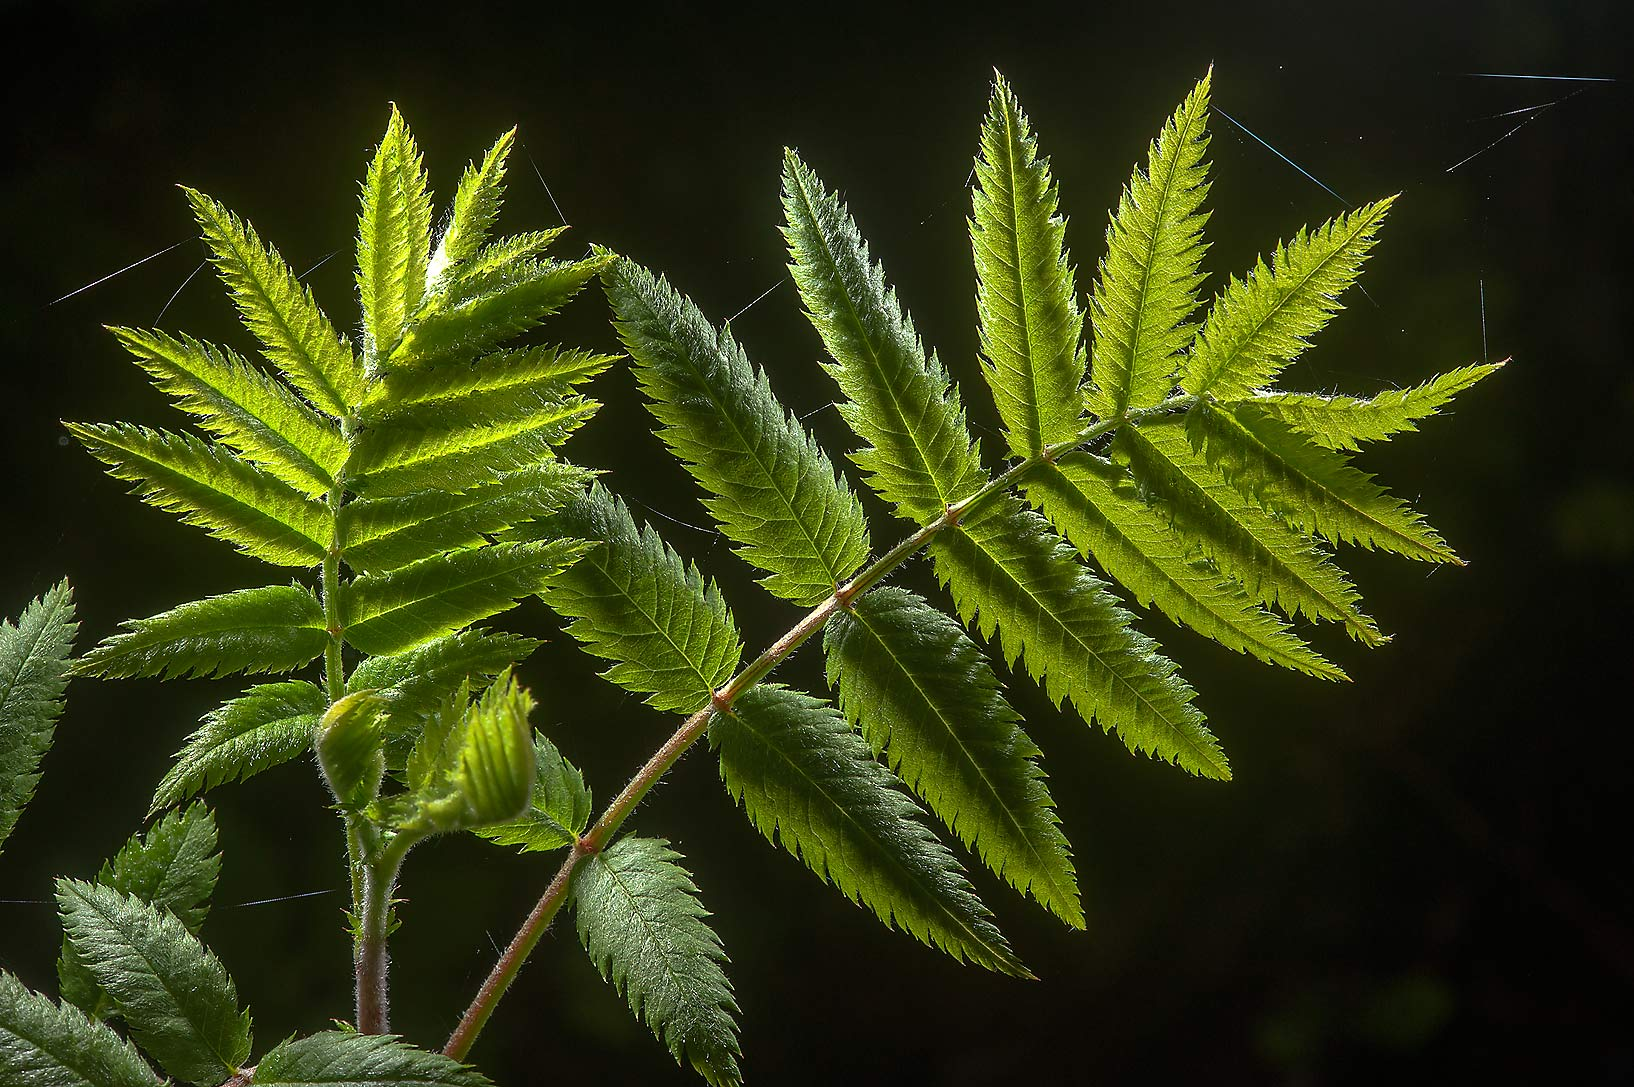 Back lit leaves of mountain ash (Sorbus aucuparia...a suburb of St.Petersburg, Russia